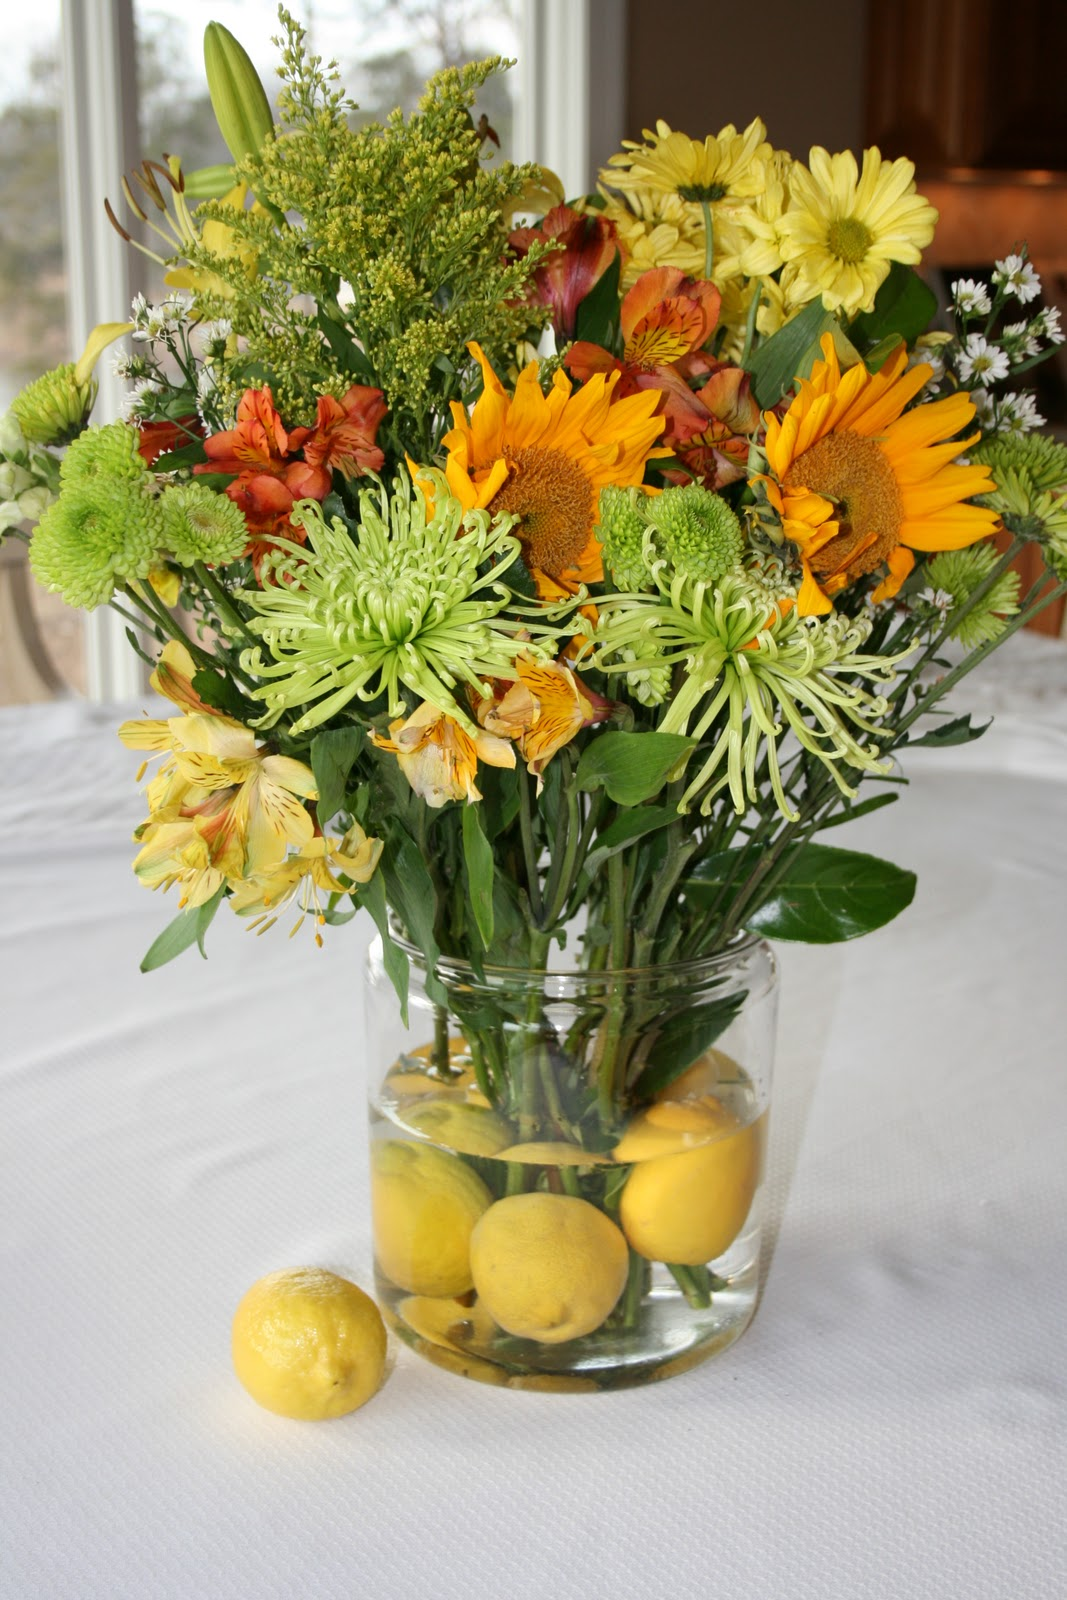 Everyday Entertaining Flower Arrangements with Fruit DIY Projects